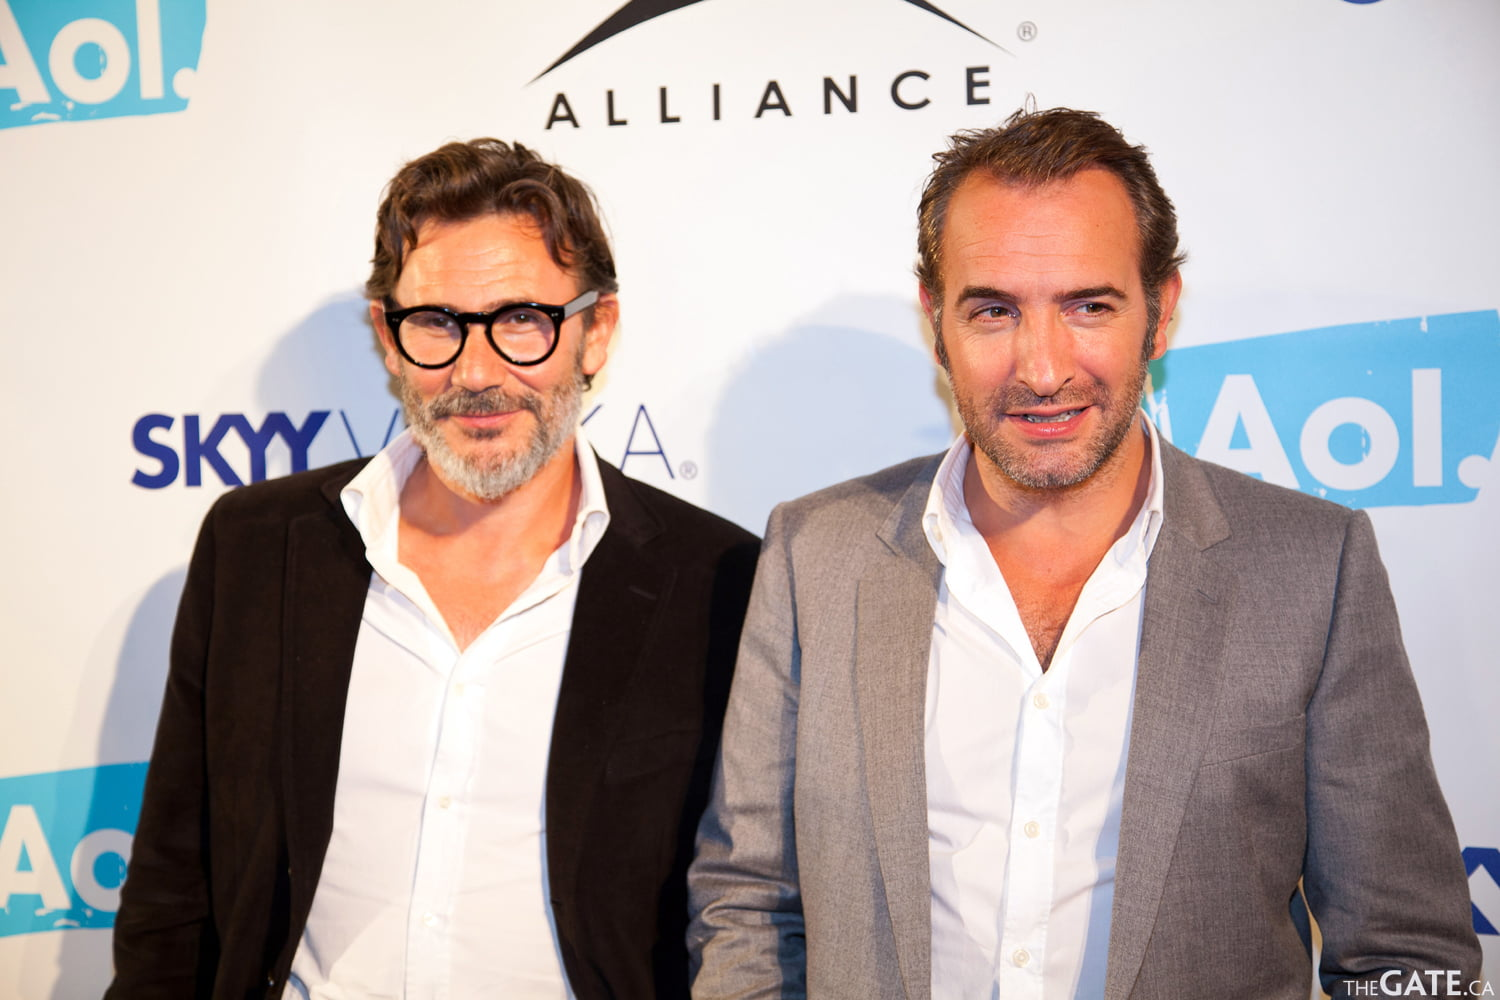 Michel Hazanavicius and Jean Dujardin